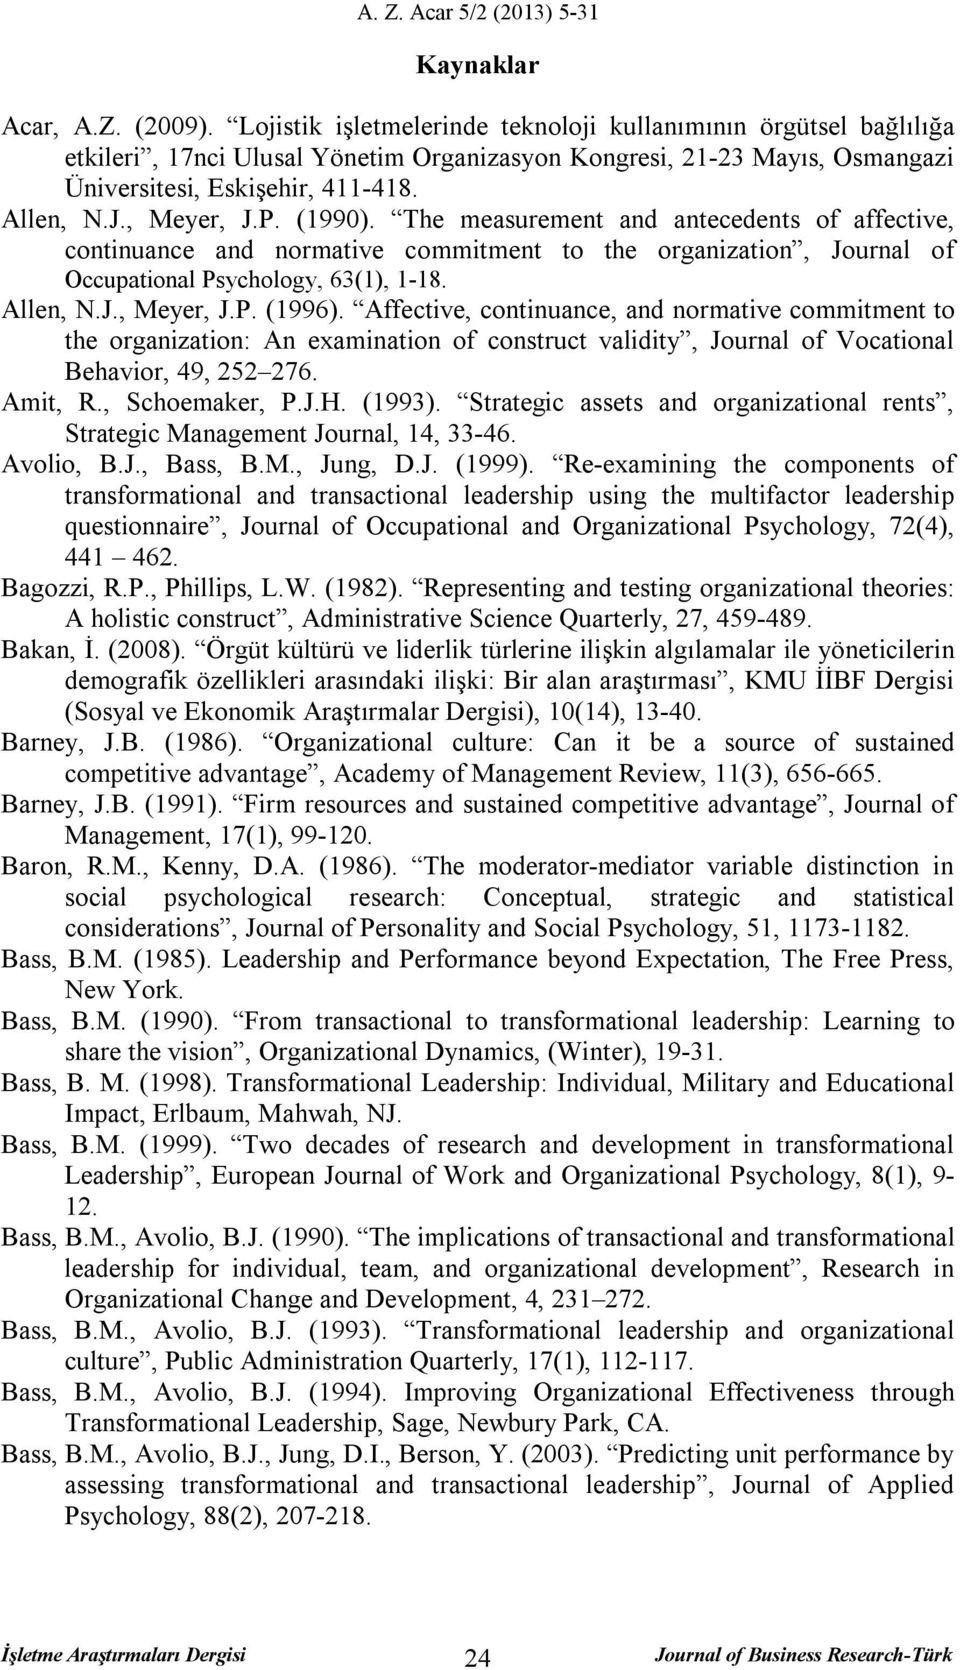 P. (1990). The measurement and antecedents of affective, continuance and normative commitment to the organization, Journal of Occupational Psychology, 63(1), 1-18. Allen, N.J., Meyer, J.P. (1996).